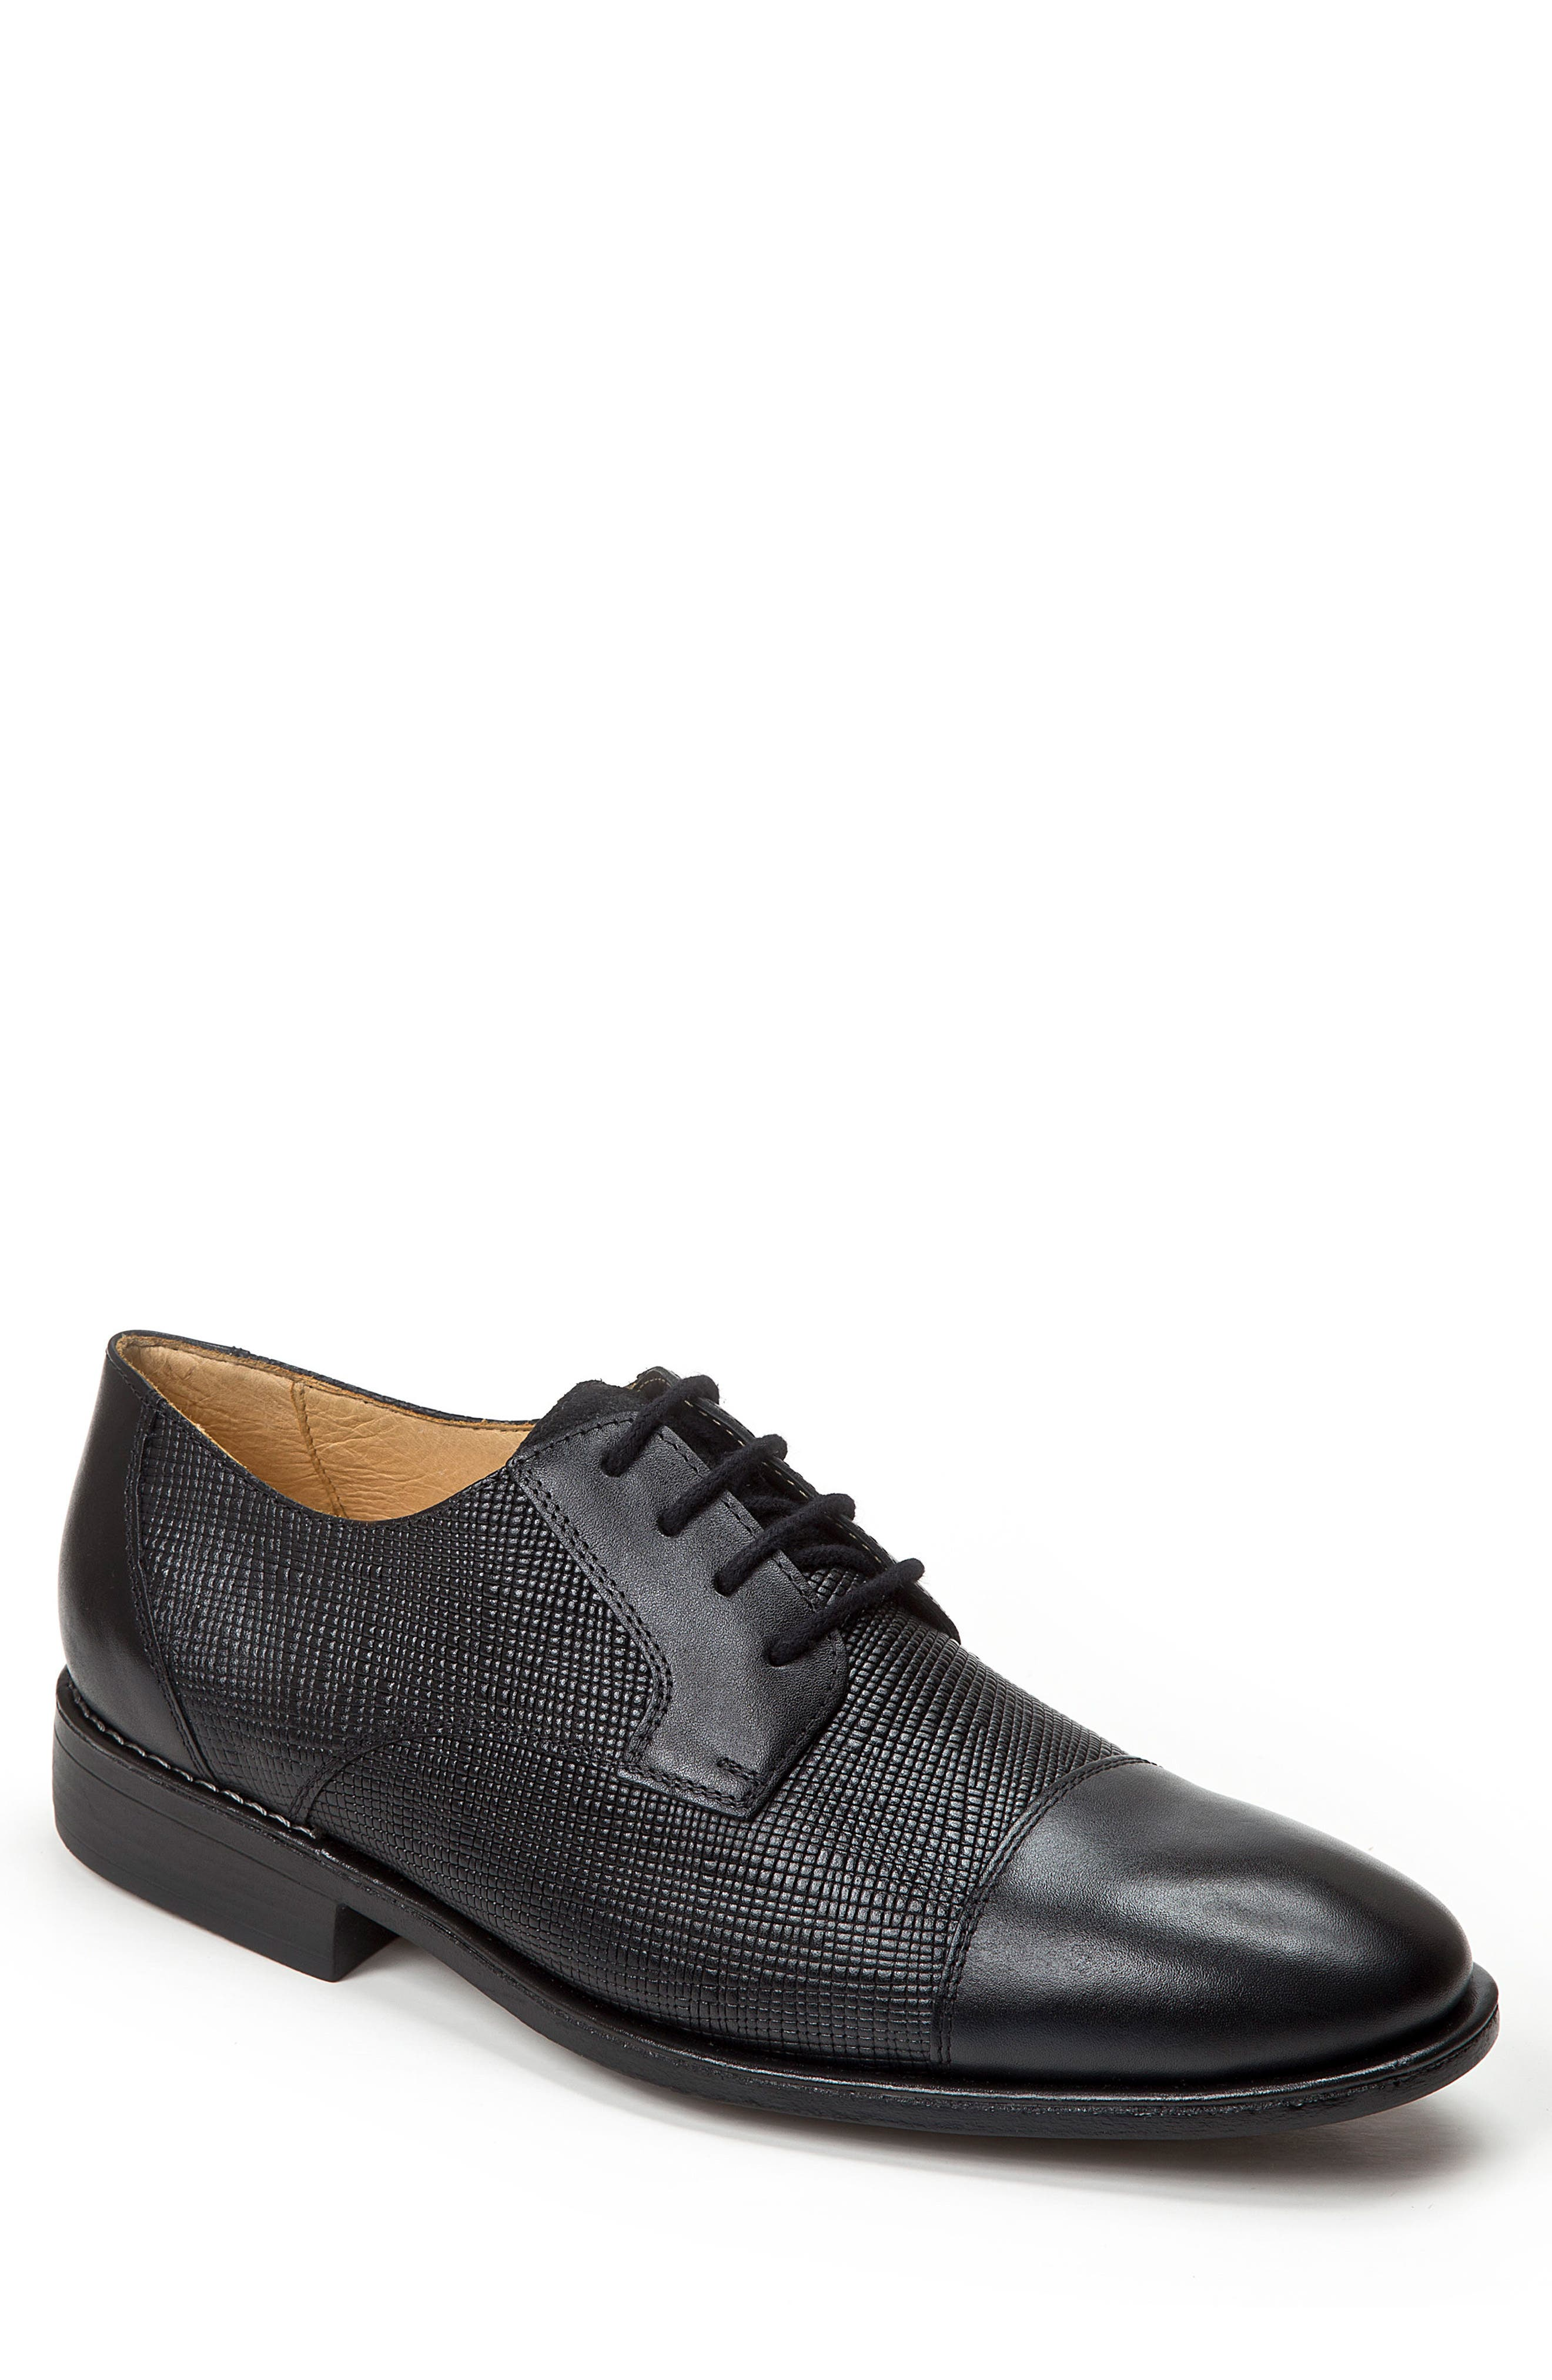 Ronny Embossed Cap Toe Derby,                         Main,                         color, Black Leather